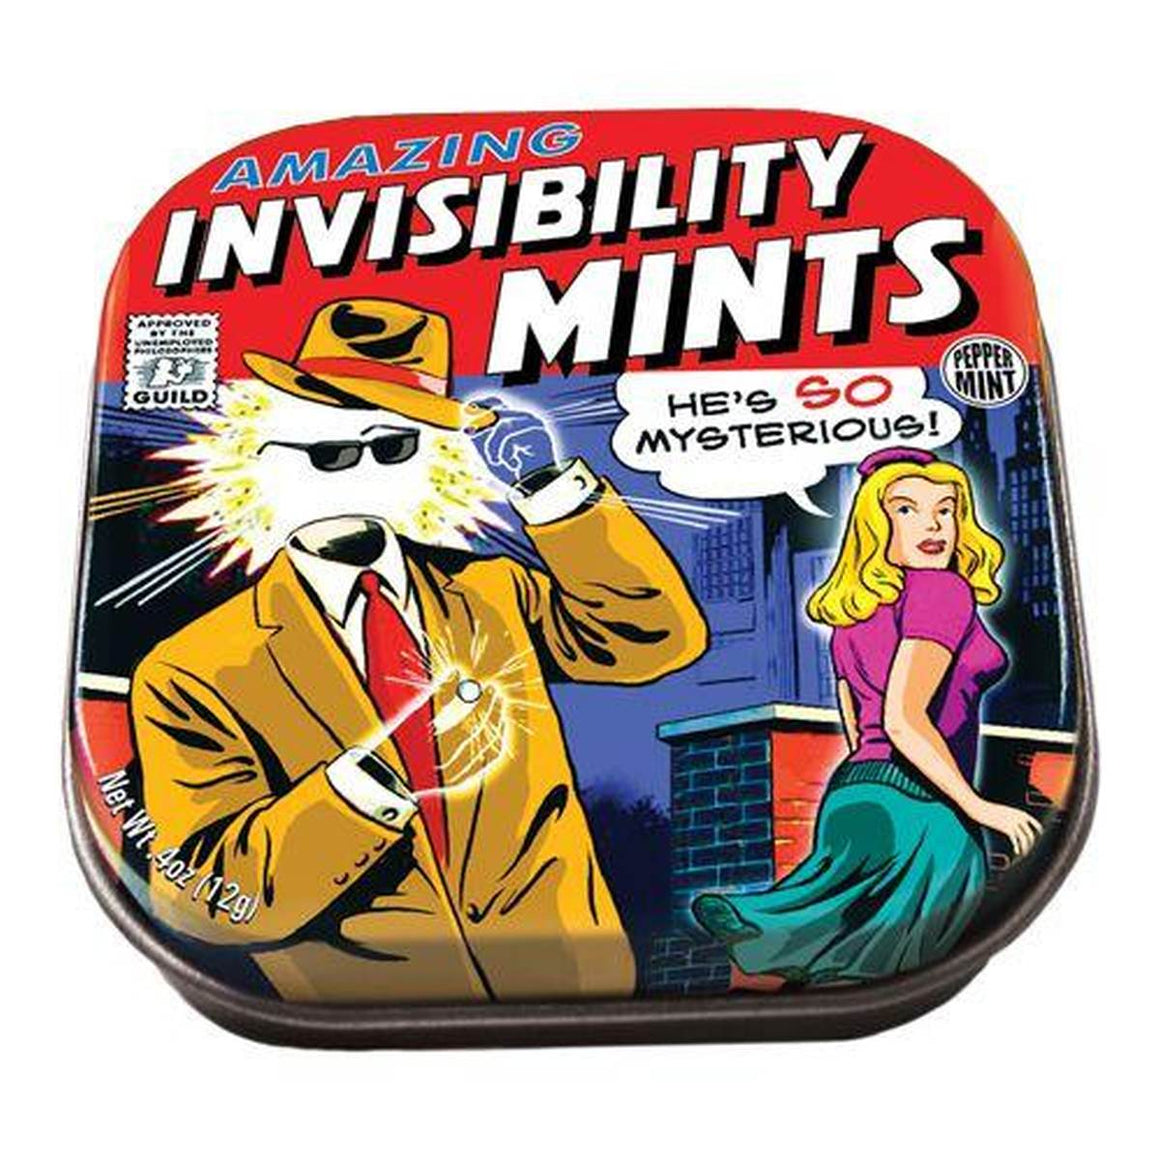 A small tin of mints printed with a comic book image of the Invisible man.